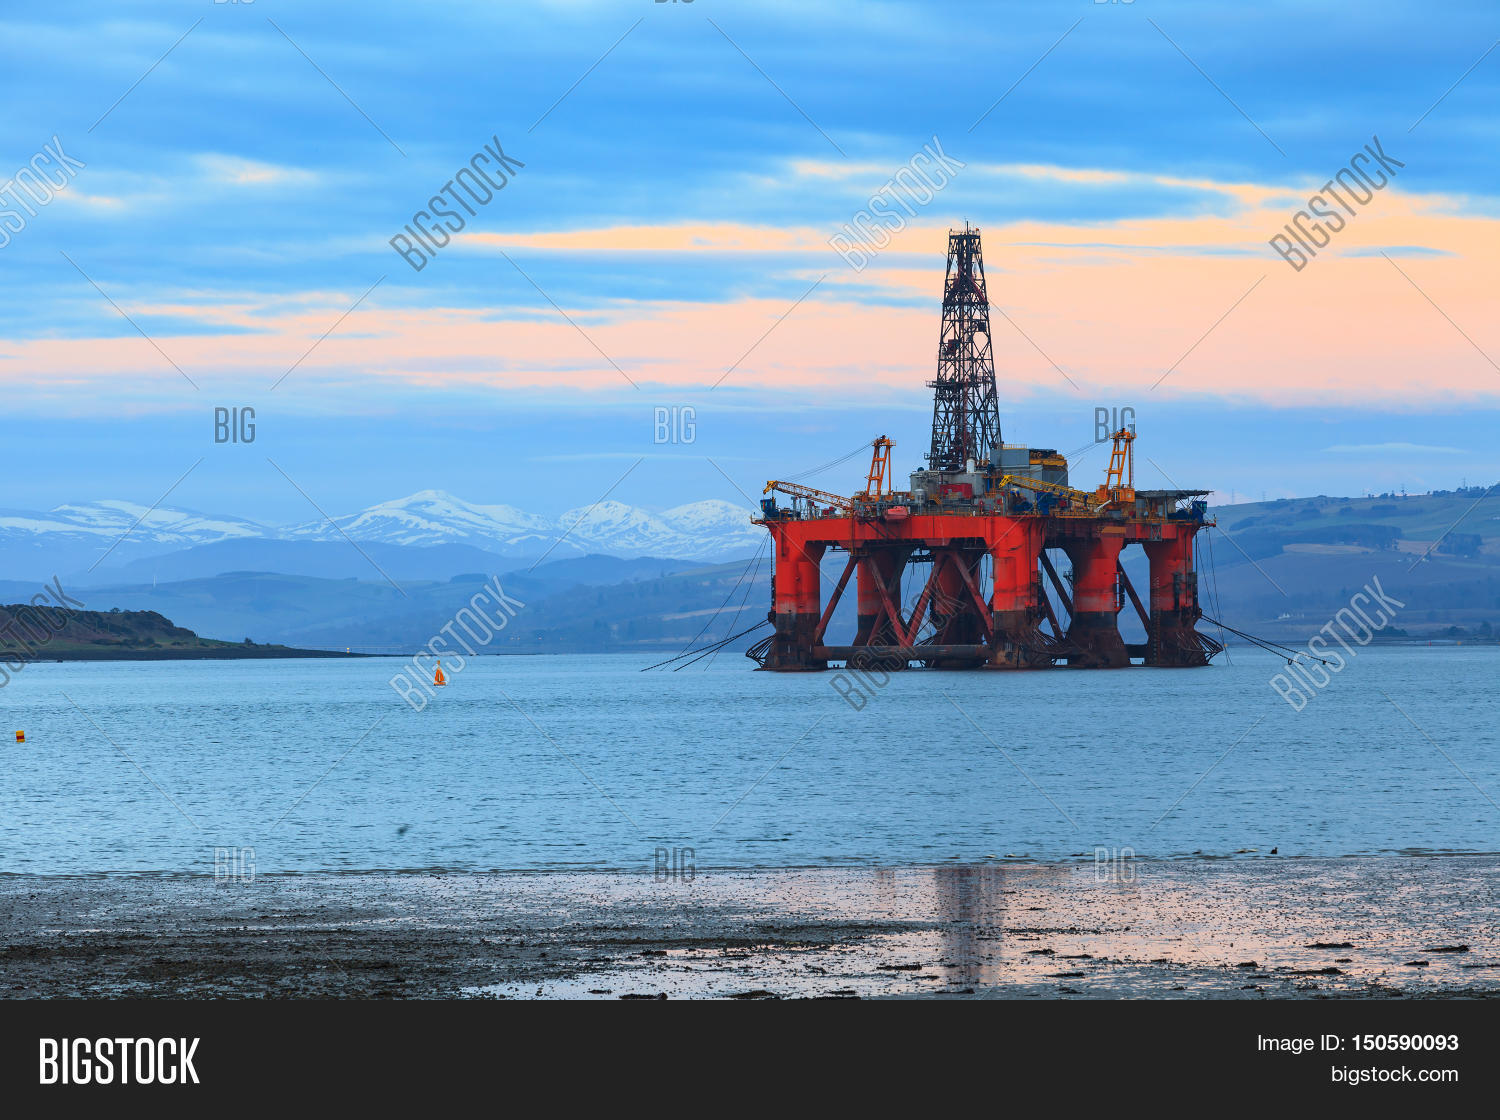 Cromarty,Firth,anchor,ballast,ballasted,buoyancy,business,cape,chain,derrick,driller,drilling,energy,engineering,environment,equipment,field,fuel,gas,gasoline,hightland,industrial,industry,inverness,kingdom,ocean,offshore,oil,oilfield,oilrig,operation,petroleum,pontoon,power,rig,scotland,sea,semi,sub,submersible,sunrise,sunset,town,uk,united,water,worker,yard